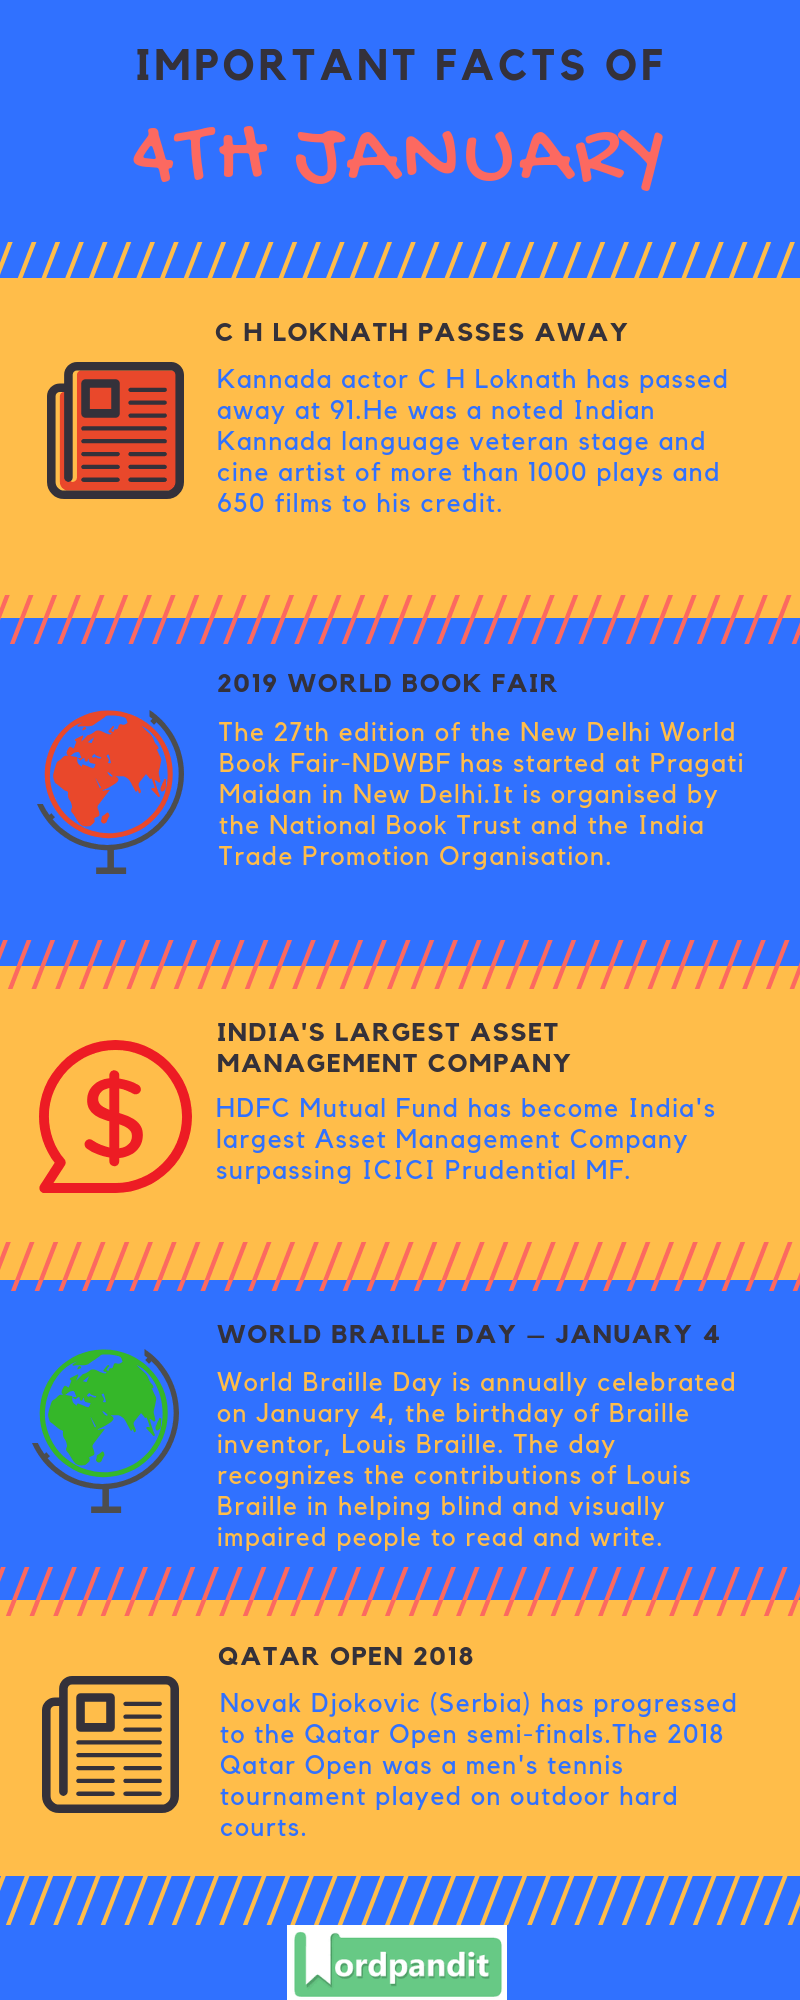 Daily Current Affairs 4 January 2019 Current Affairs Quiz 4 January 2019 Current Affairs Infographic